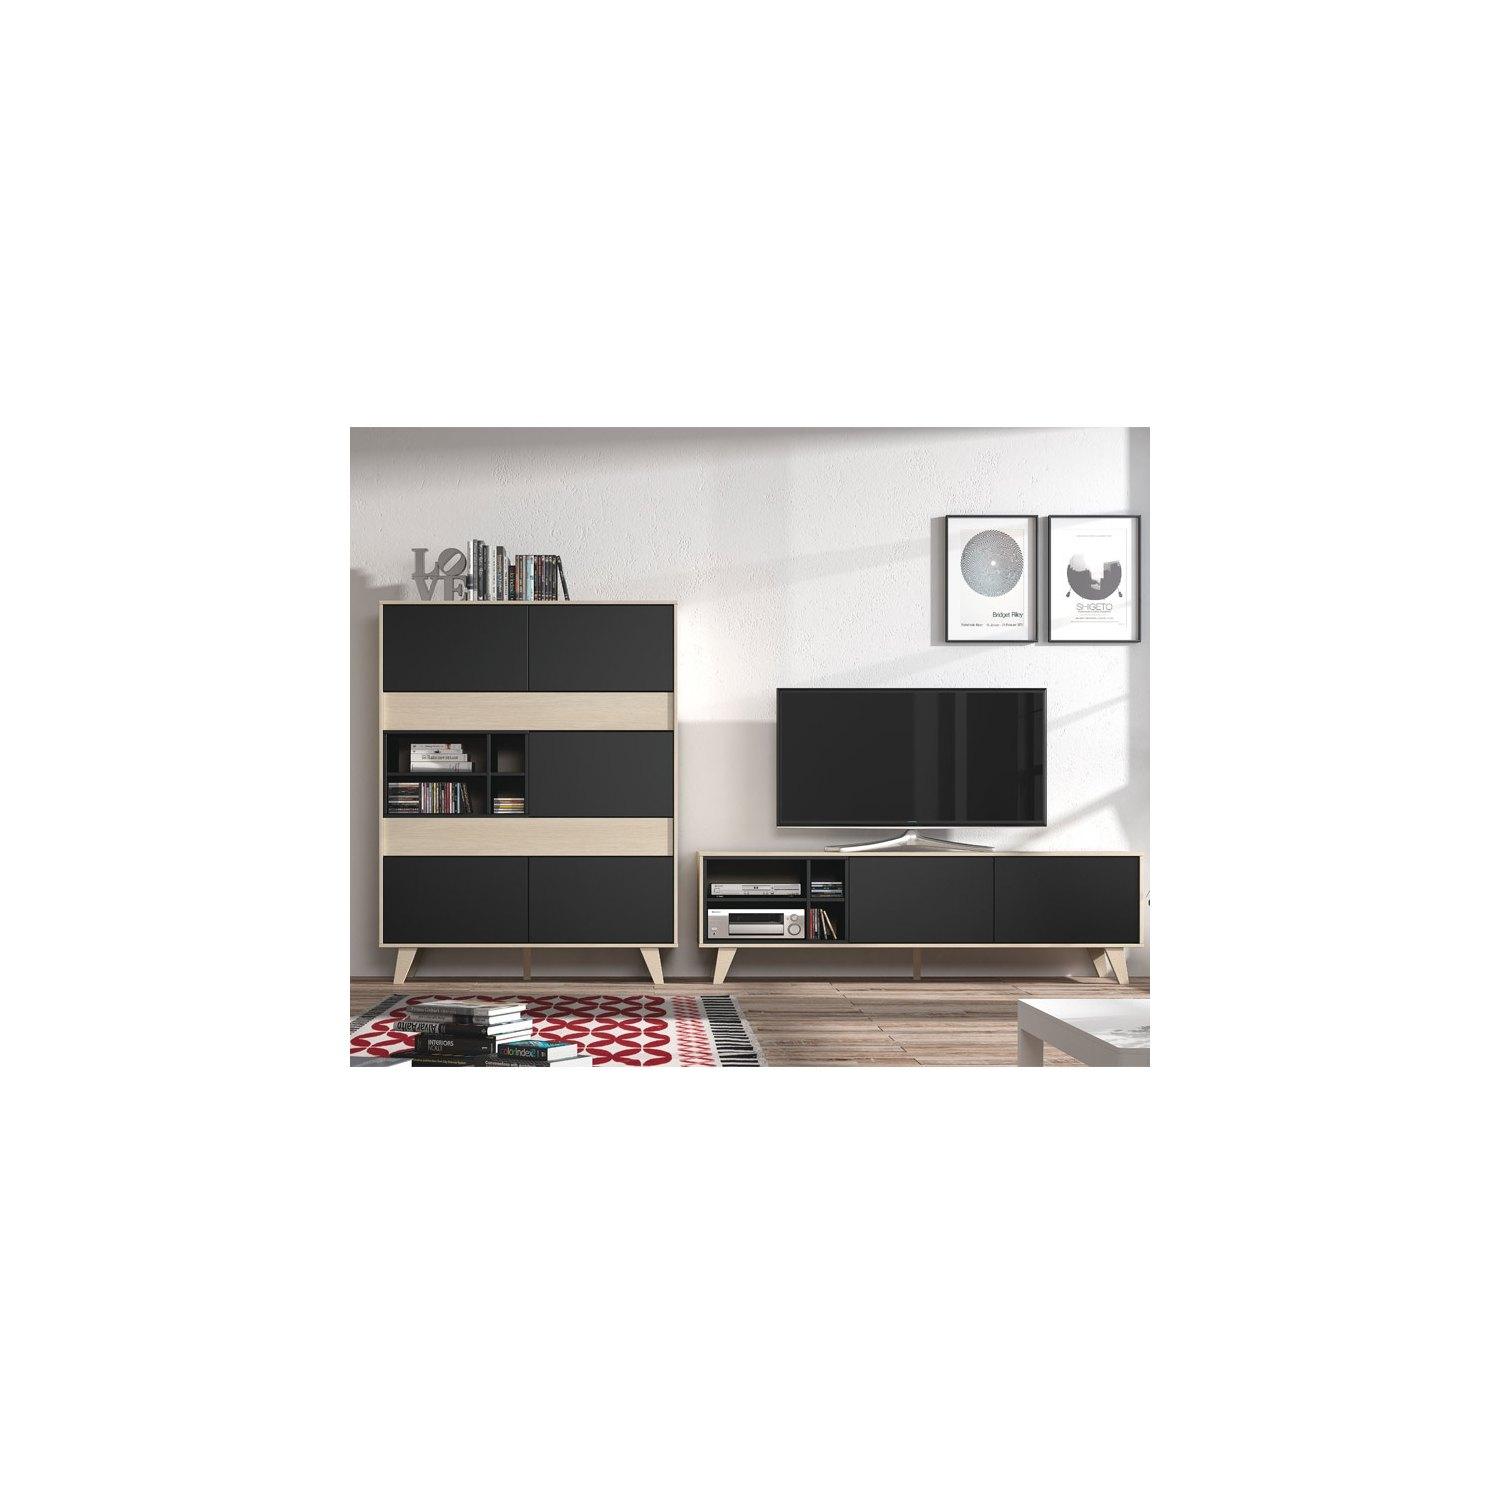 buffet pas cher achetez online buffet moderne. Black Bedroom Furniture Sets. Home Design Ideas